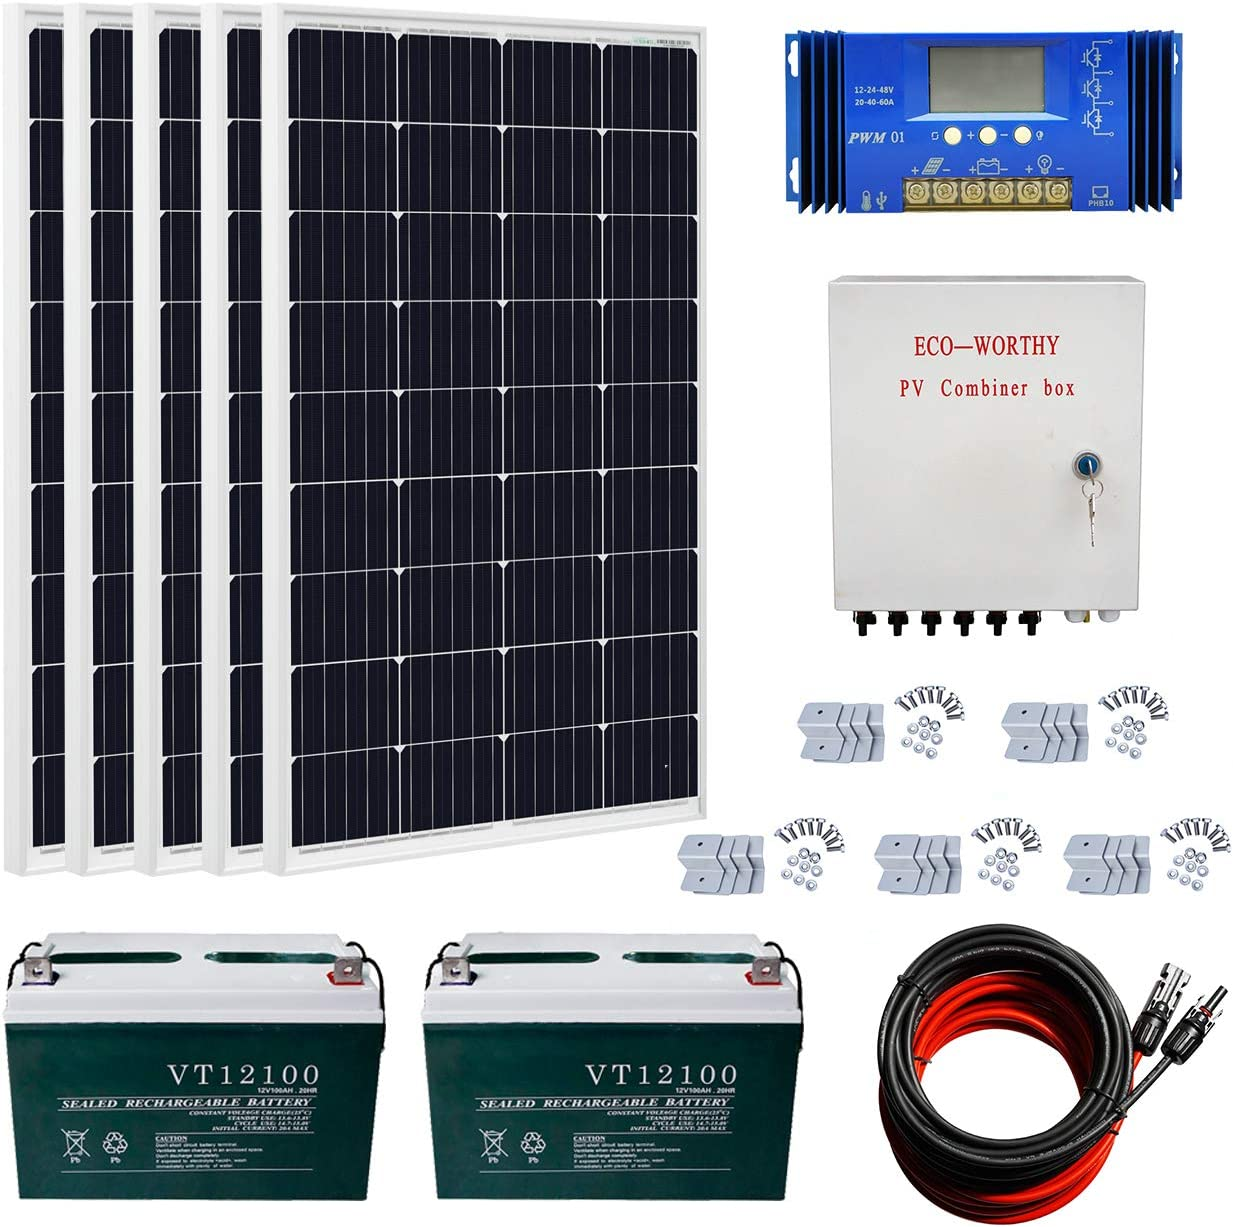 ECO-WORTHY 600 Watts Complete Solar Kit Off Grid 5pcs 120W Mono Solar Panel Module 60 A Charge Controller Combiner Box Solar Cable Z Brackets 200Ah 12V Batterry